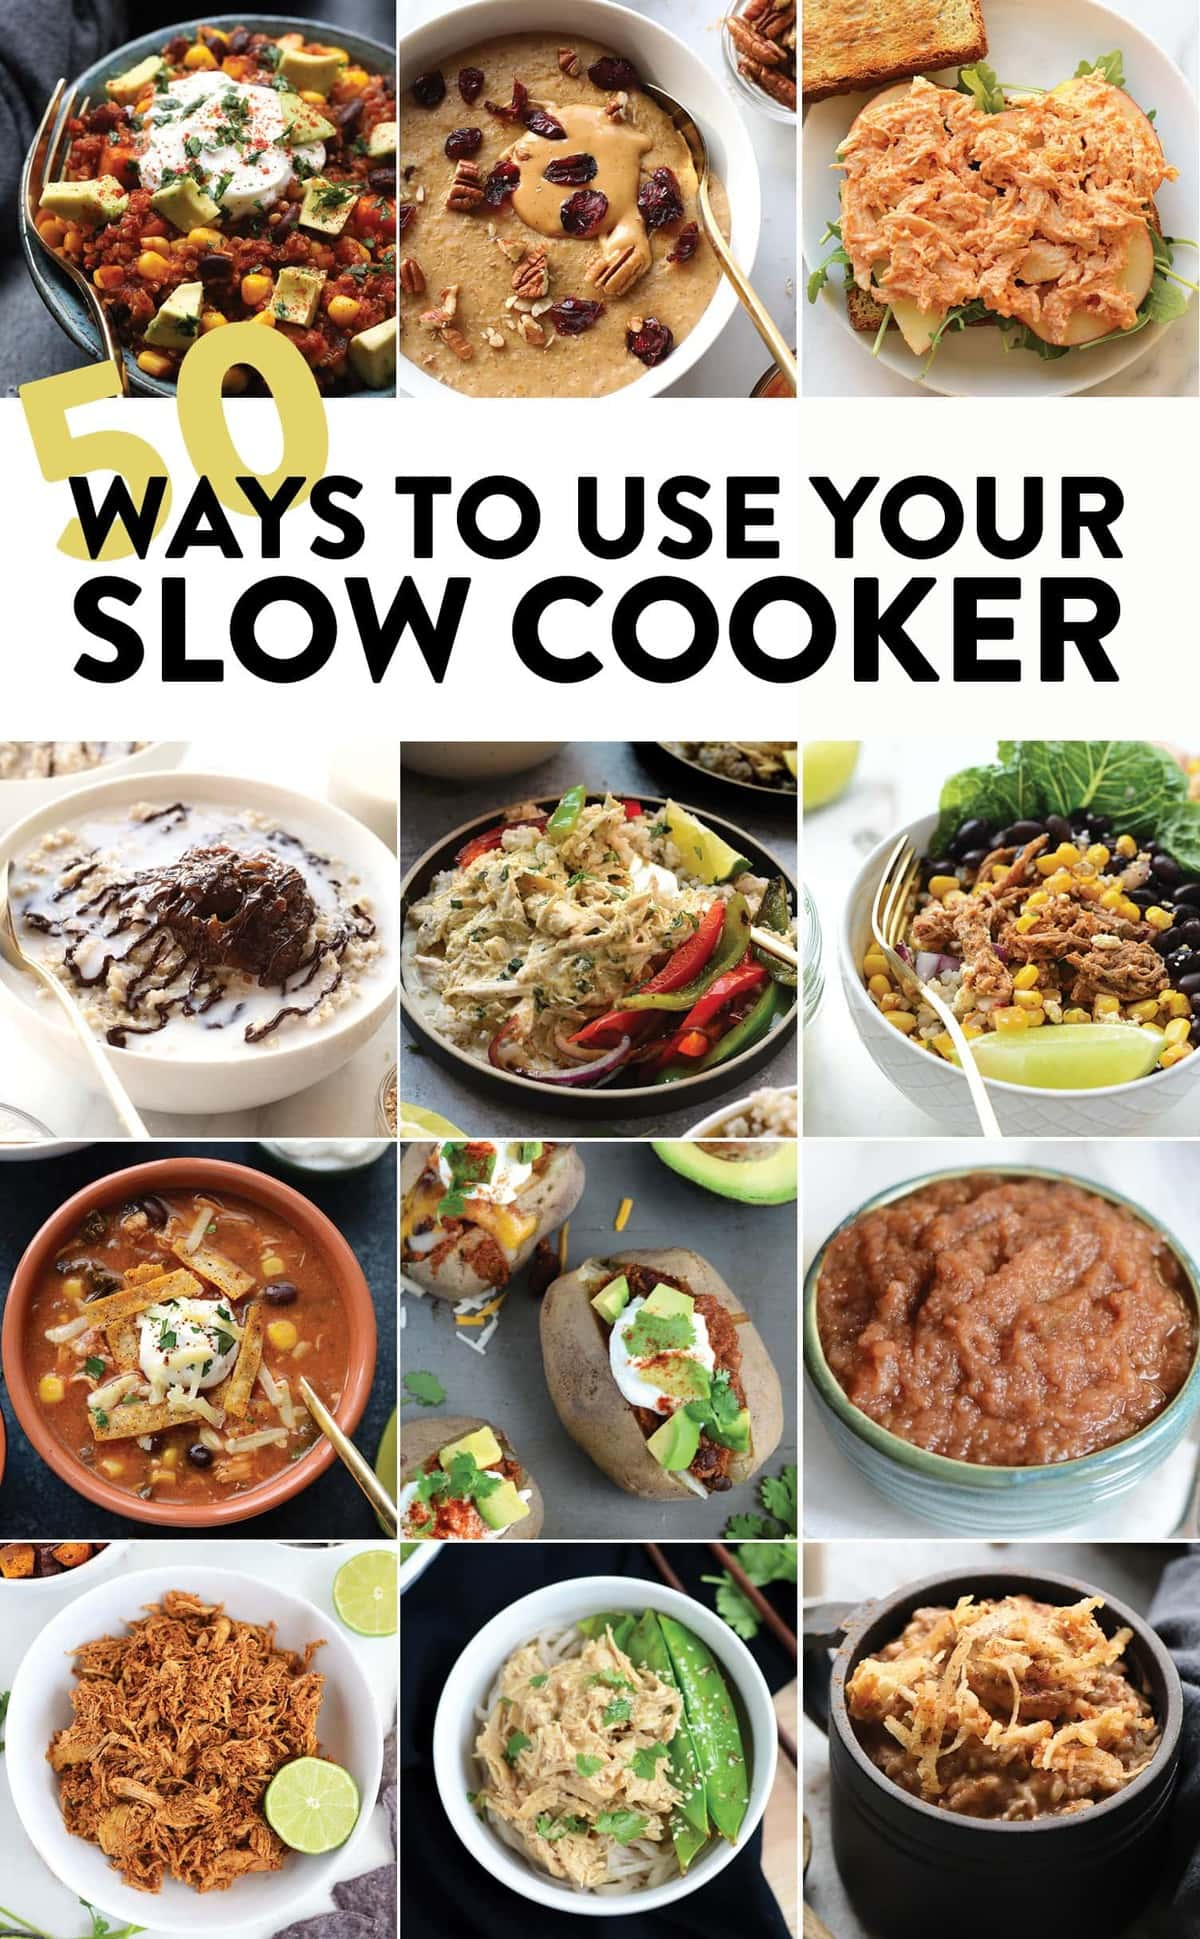 Get inspired this fall and make one of these 50 healthy slow cooker recipes. In this round-up, you'll find meat-filled dinners, vegetarian lunches, meal-prep lunches/dinner, delicious breakfast, and then some